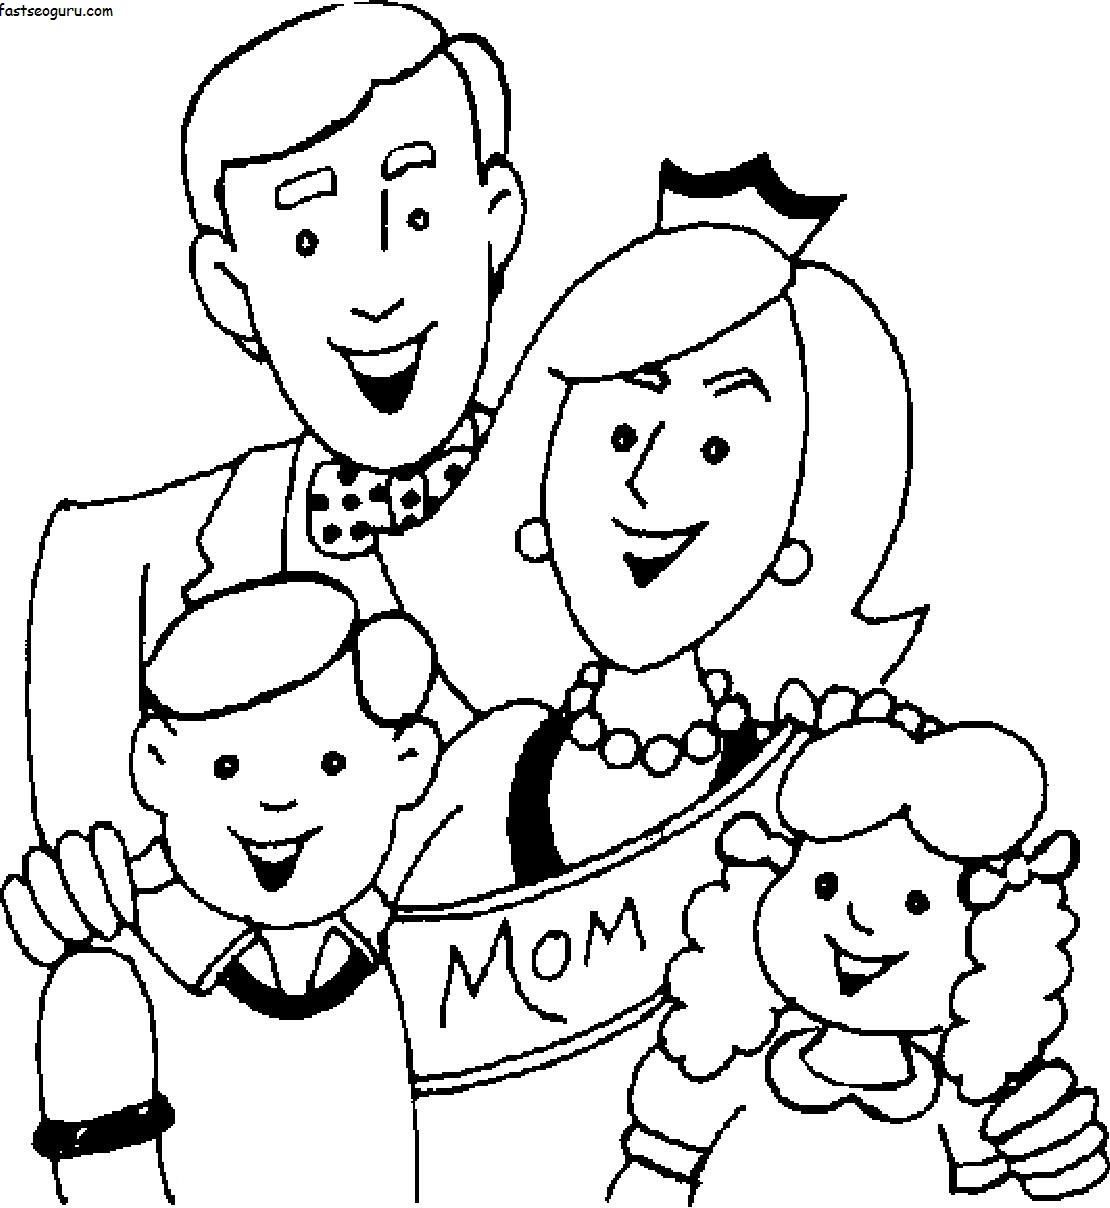 Printable mothers day with happy family coloring page for Printable family coloring pages